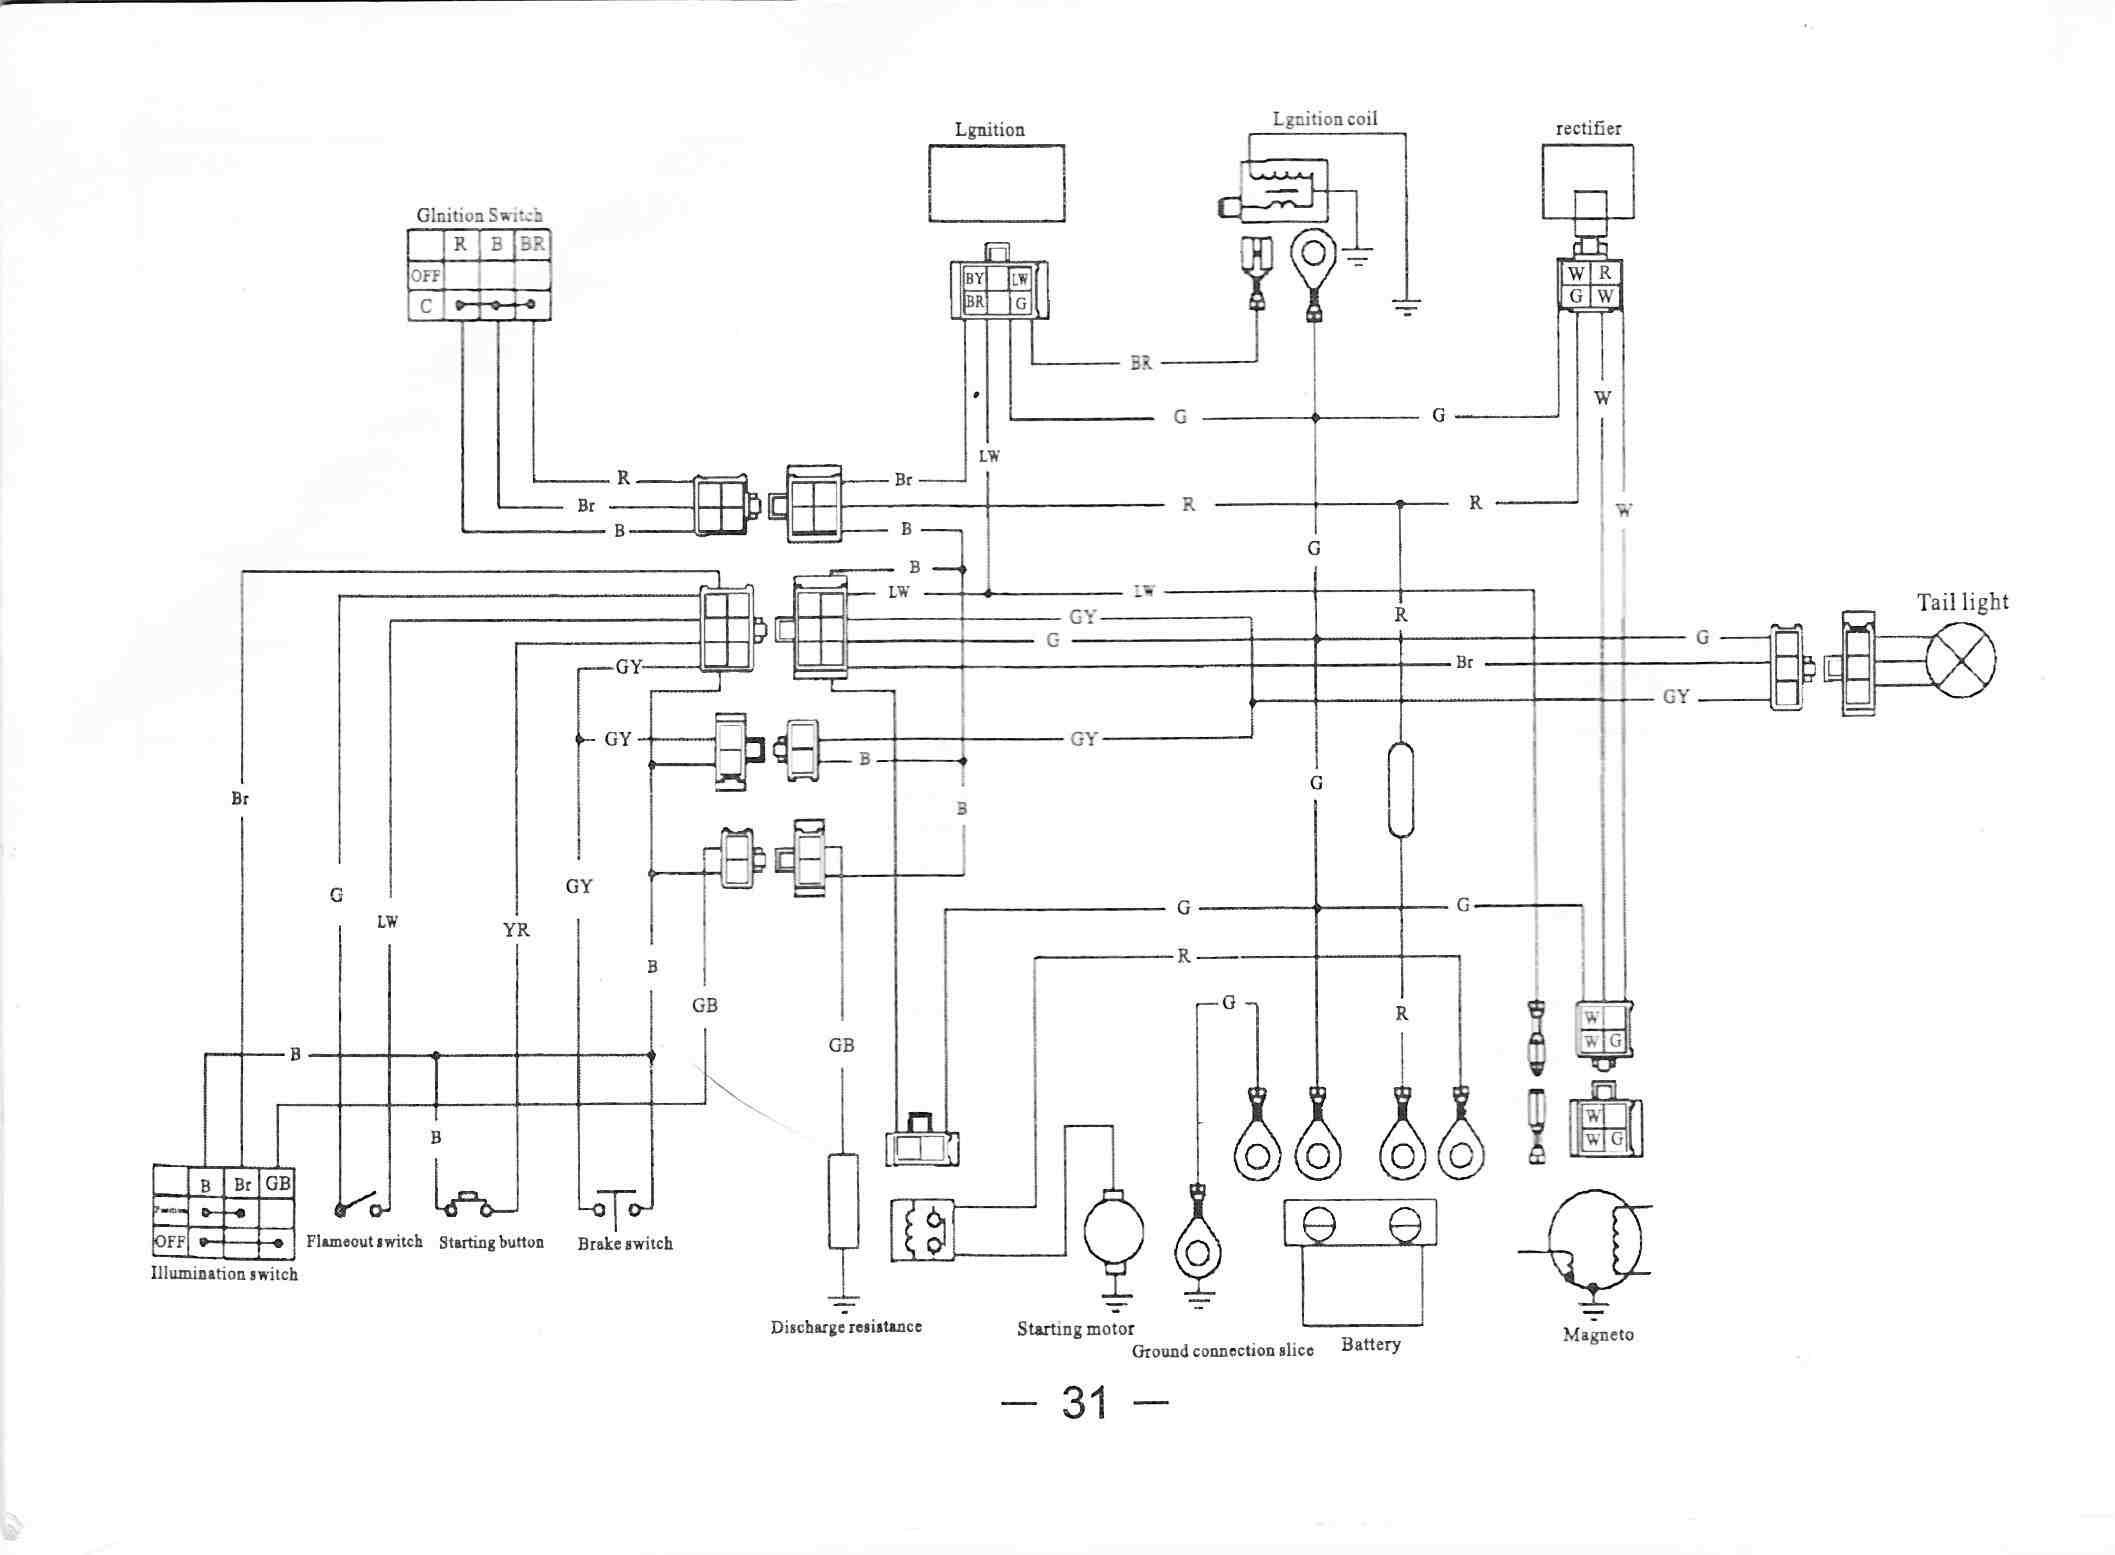 yamaha atv wiring diagram schema diagram databaseyamaha quad wiring diagram wiring diagram name 2009 yamaha atv [ 2115 x 1555 Pixel ]